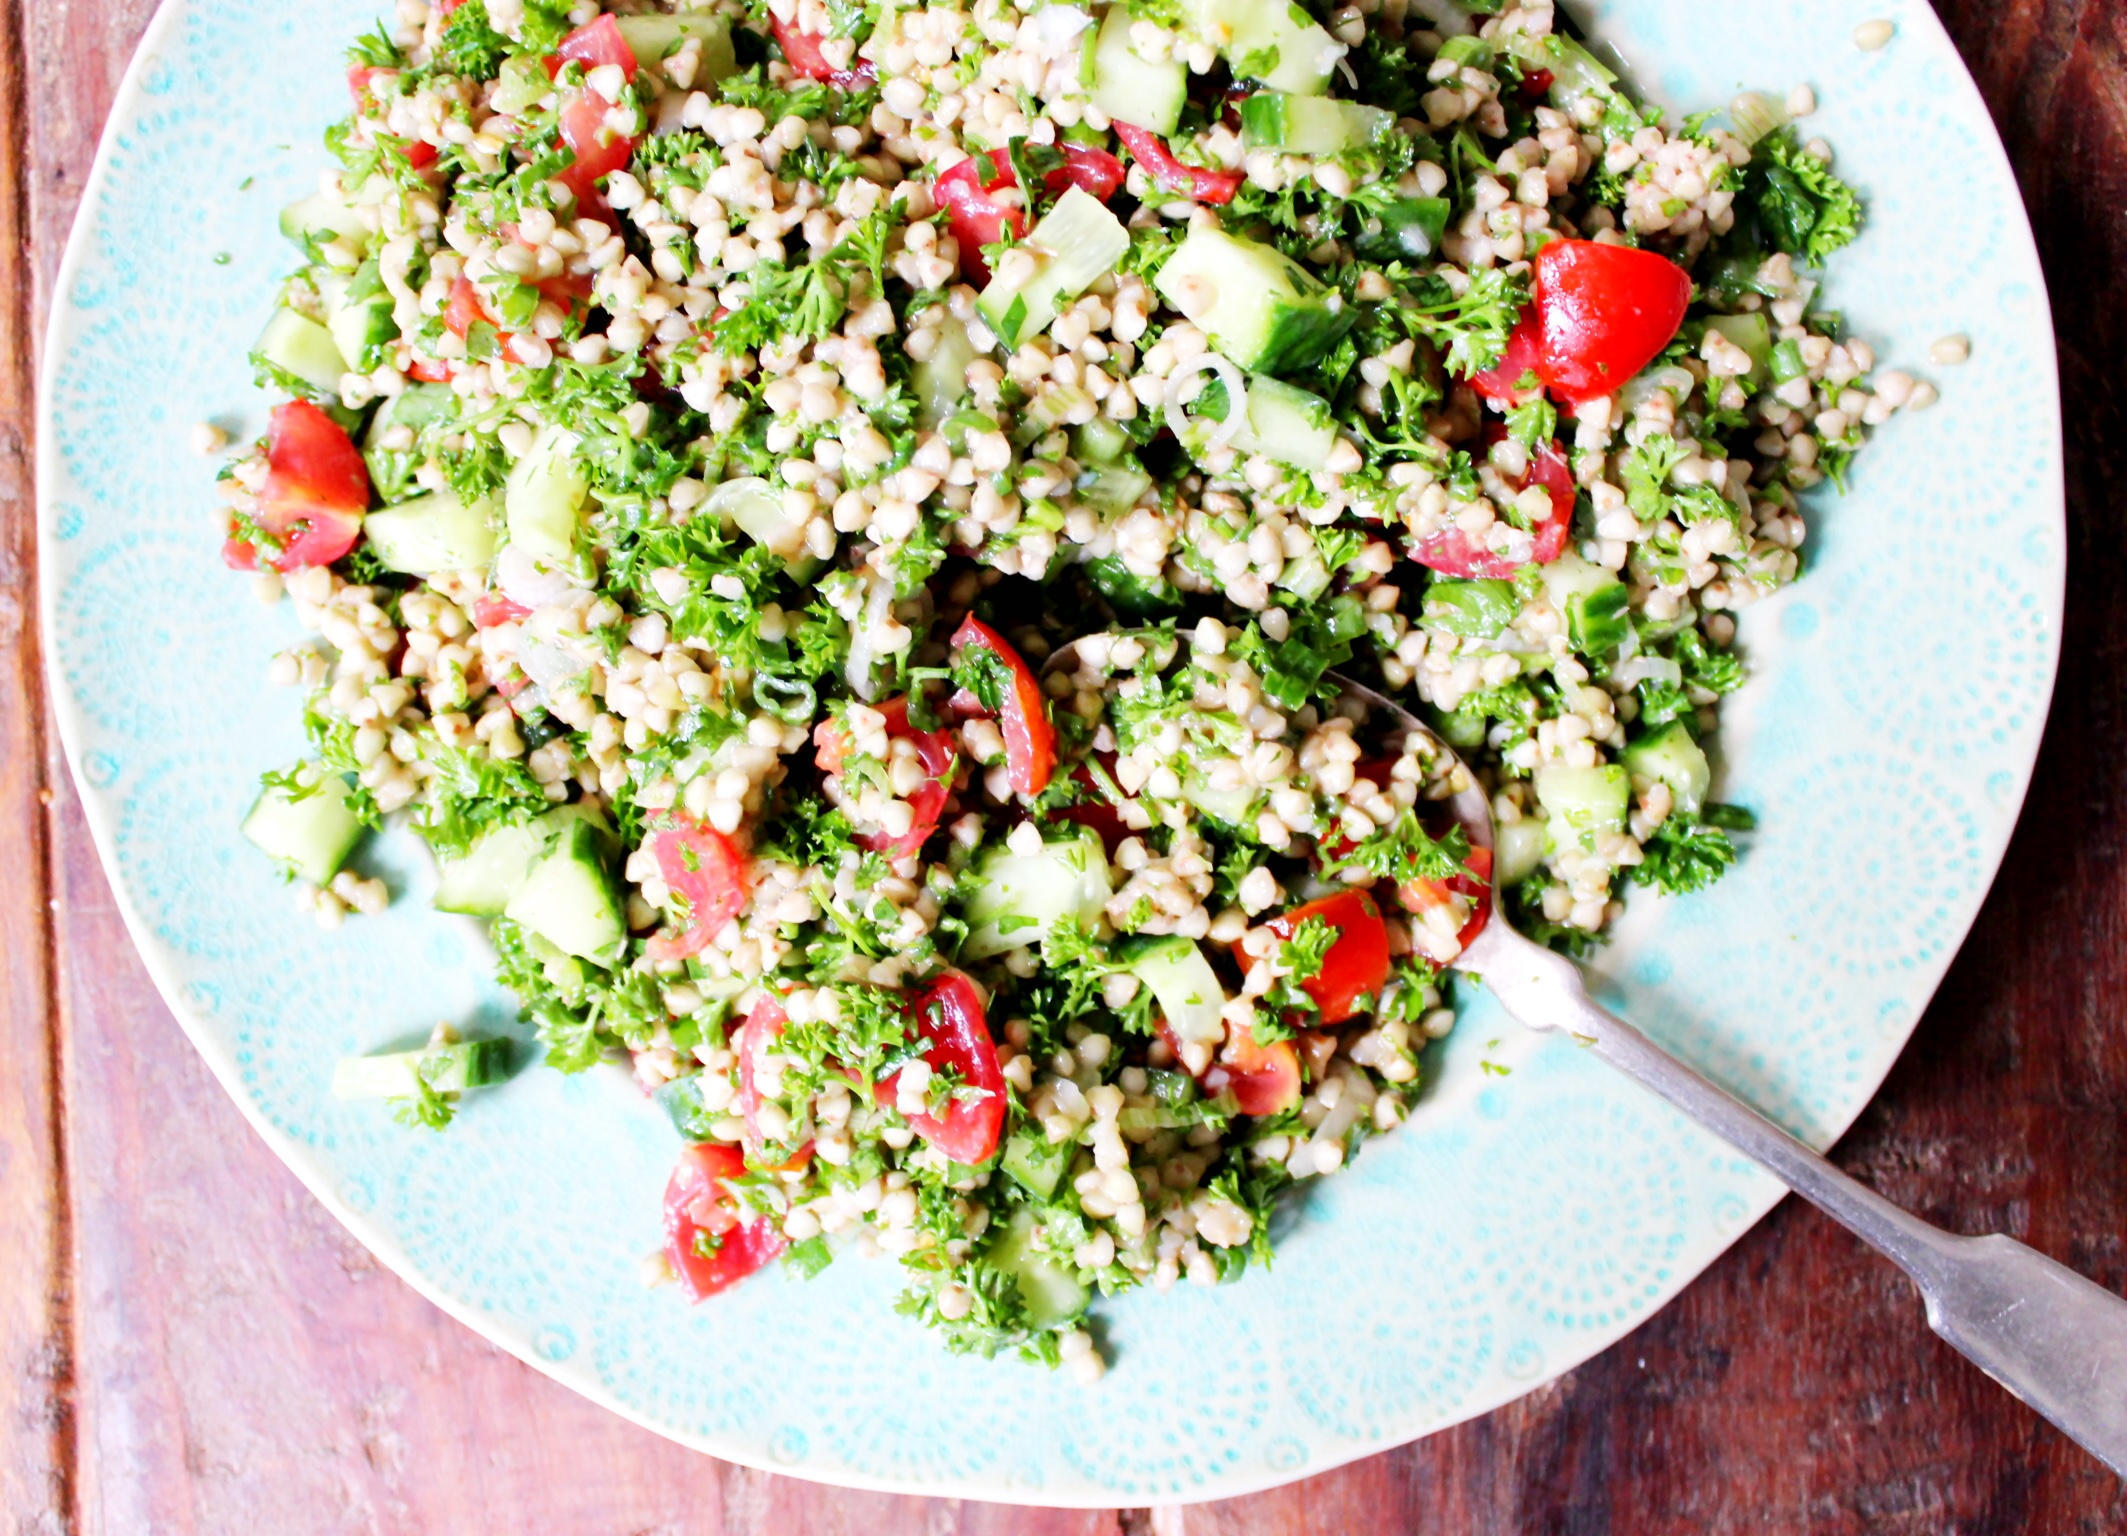 Buckwheat Tabbouleh - The Little Green Spoon